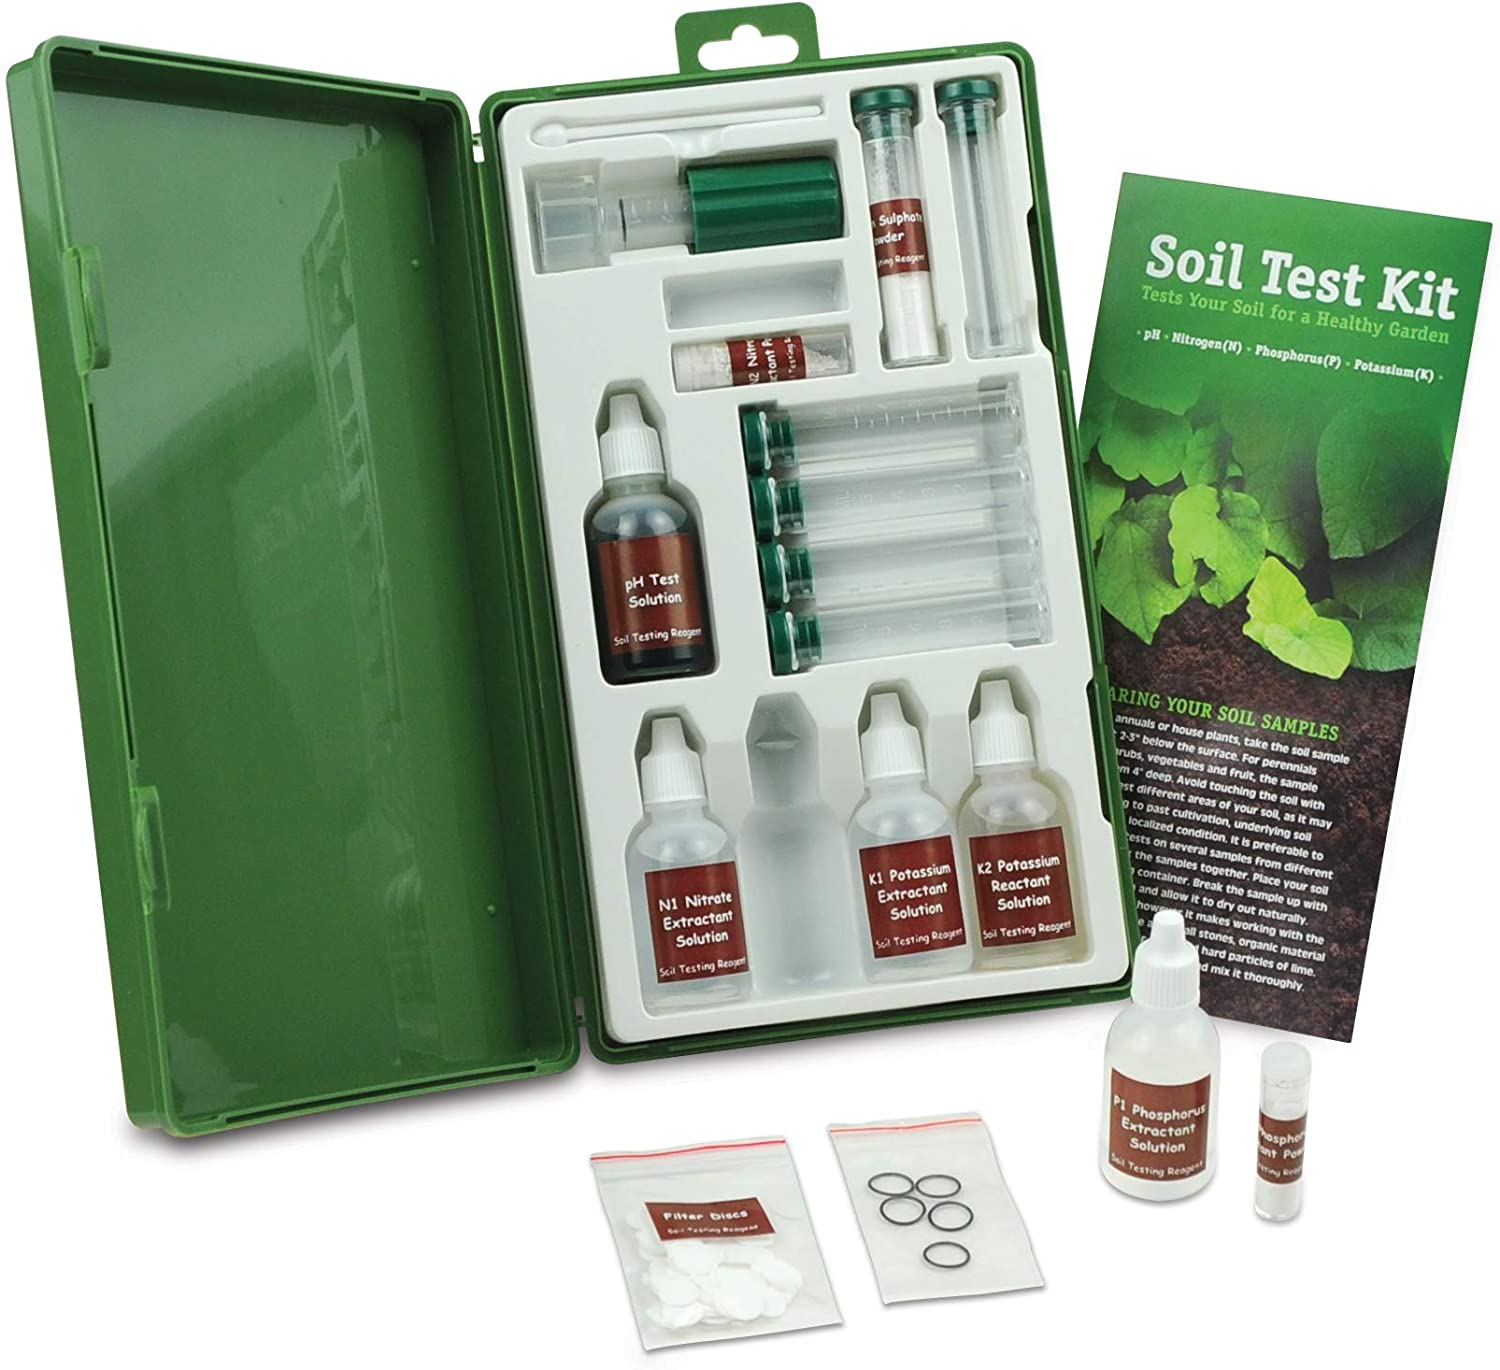 Environmental Concepts 1662 Professional Soil Test Kit with 40 Tests